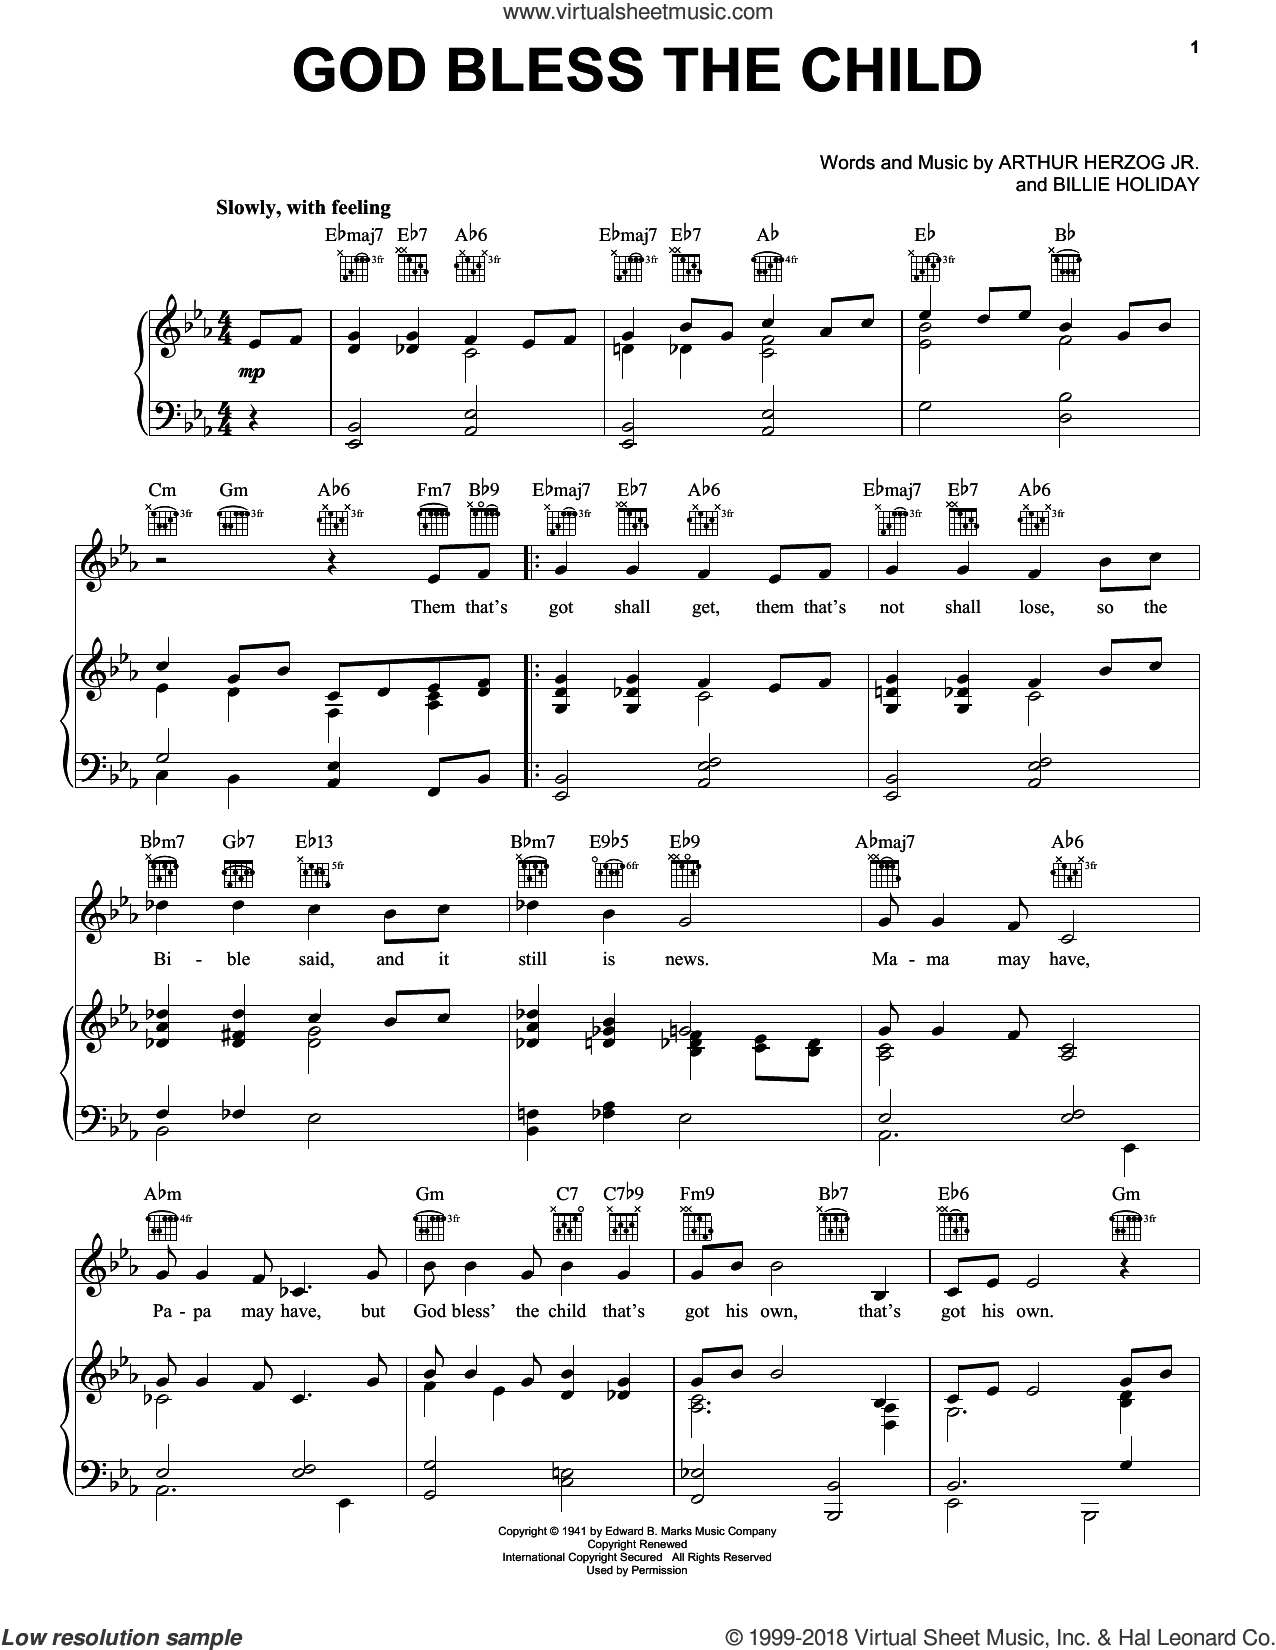 God Bless' The Child sheet music for voice, piano or guitar by Billie Holiday and Arthur Herzog Jr., intermediate skill level